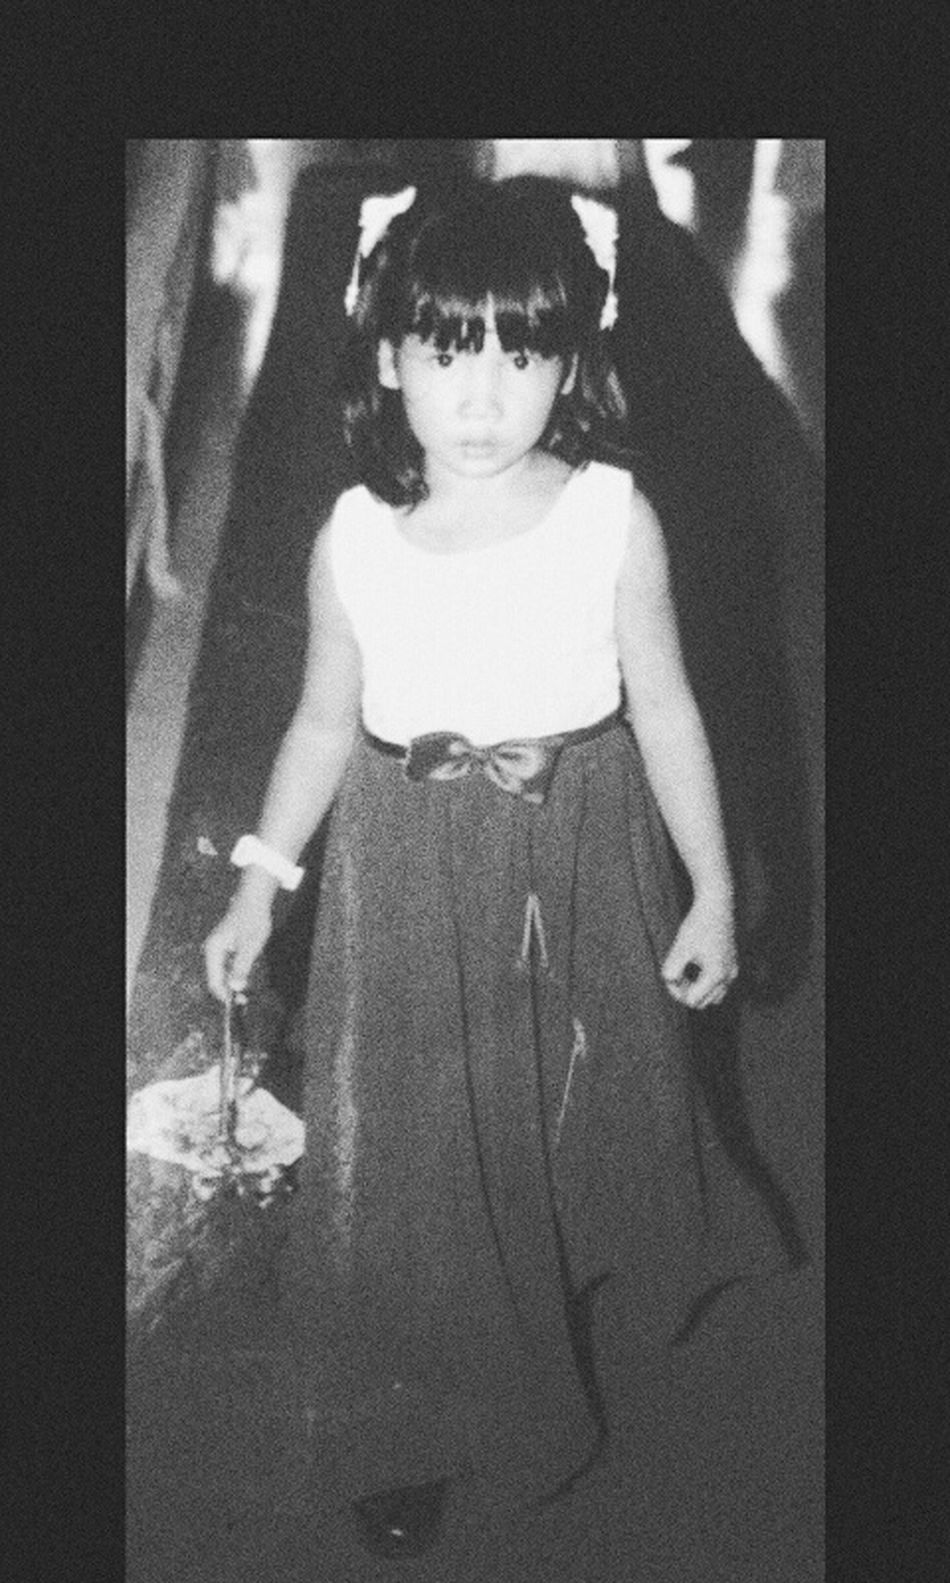 When I was young XD Fouryearsold